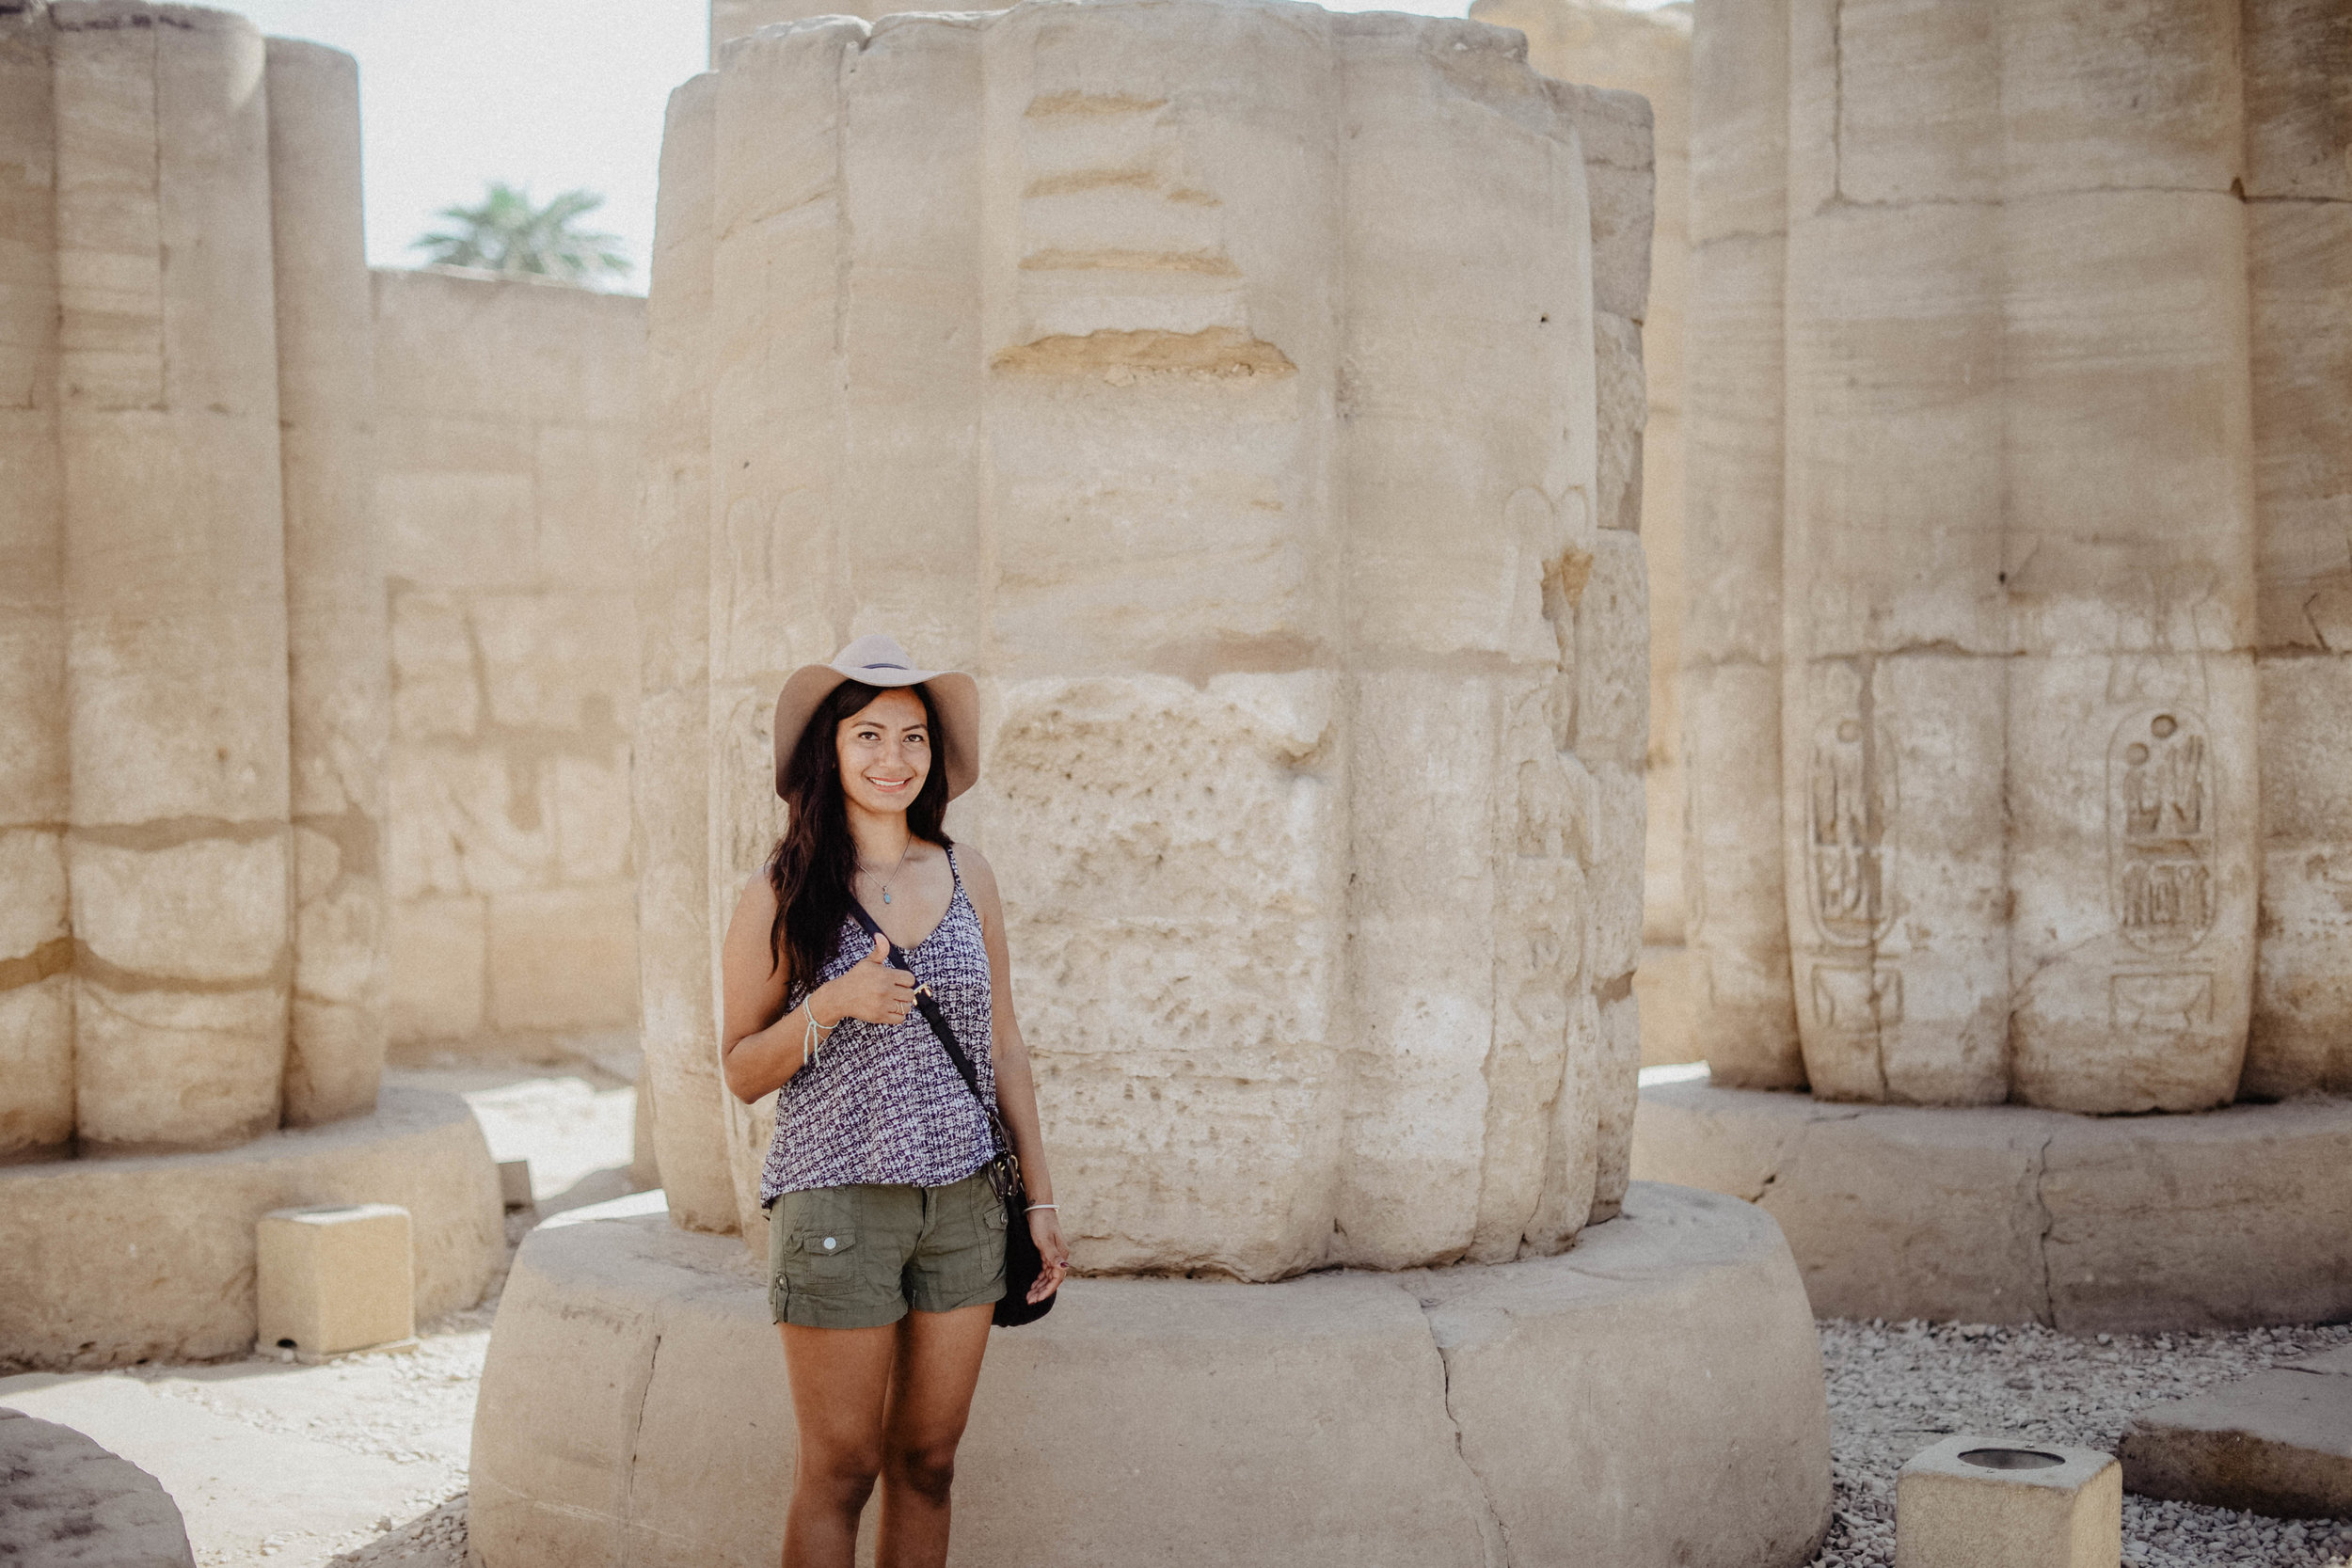 Luxor Temple - This place was located in the center of town, small fee to pay for entry but not much. Lot's of columns and hieroglyphics everywhere, plus tons of statues. Definitely do not miss this.